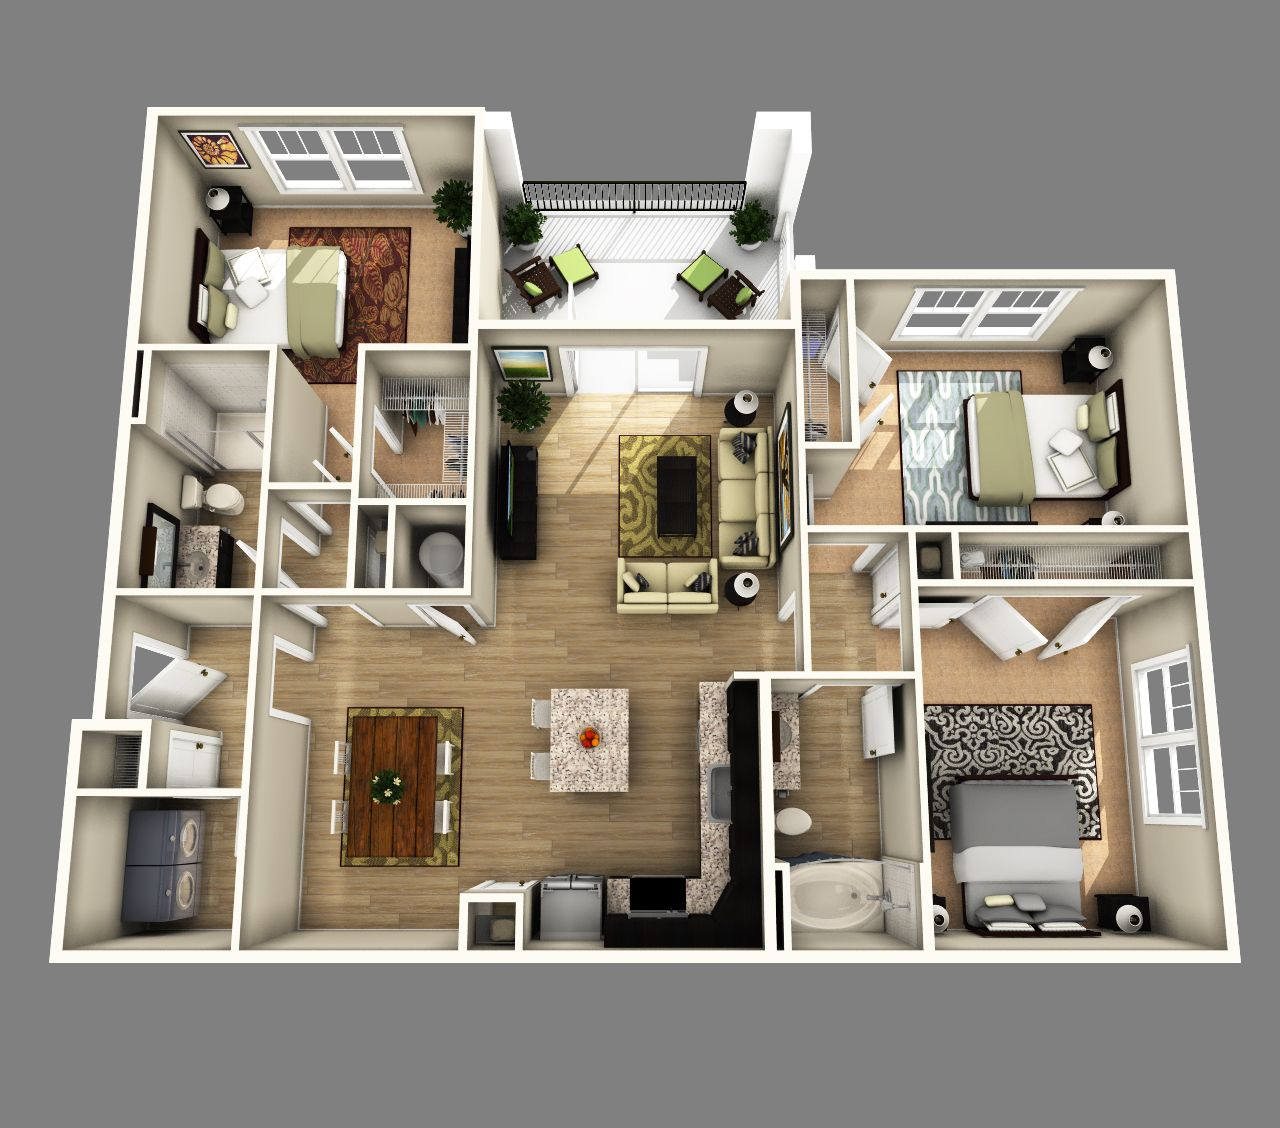 3 bedrooms apartments home design Make home design